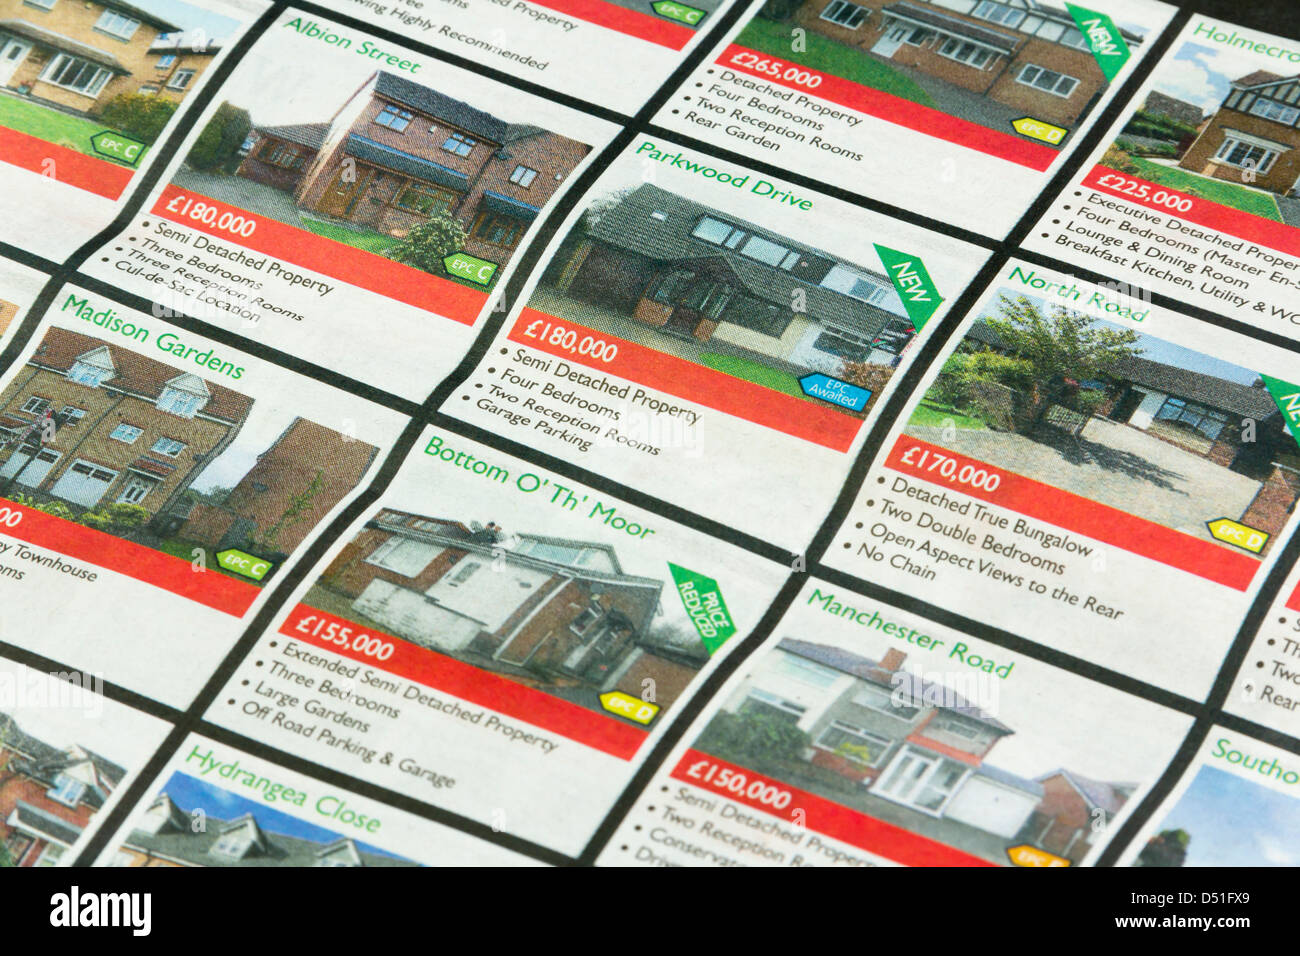 Low to mid range priced residential property adverts in the Bolton News , a daily  local newspaper in Lancashire. - Stock Image